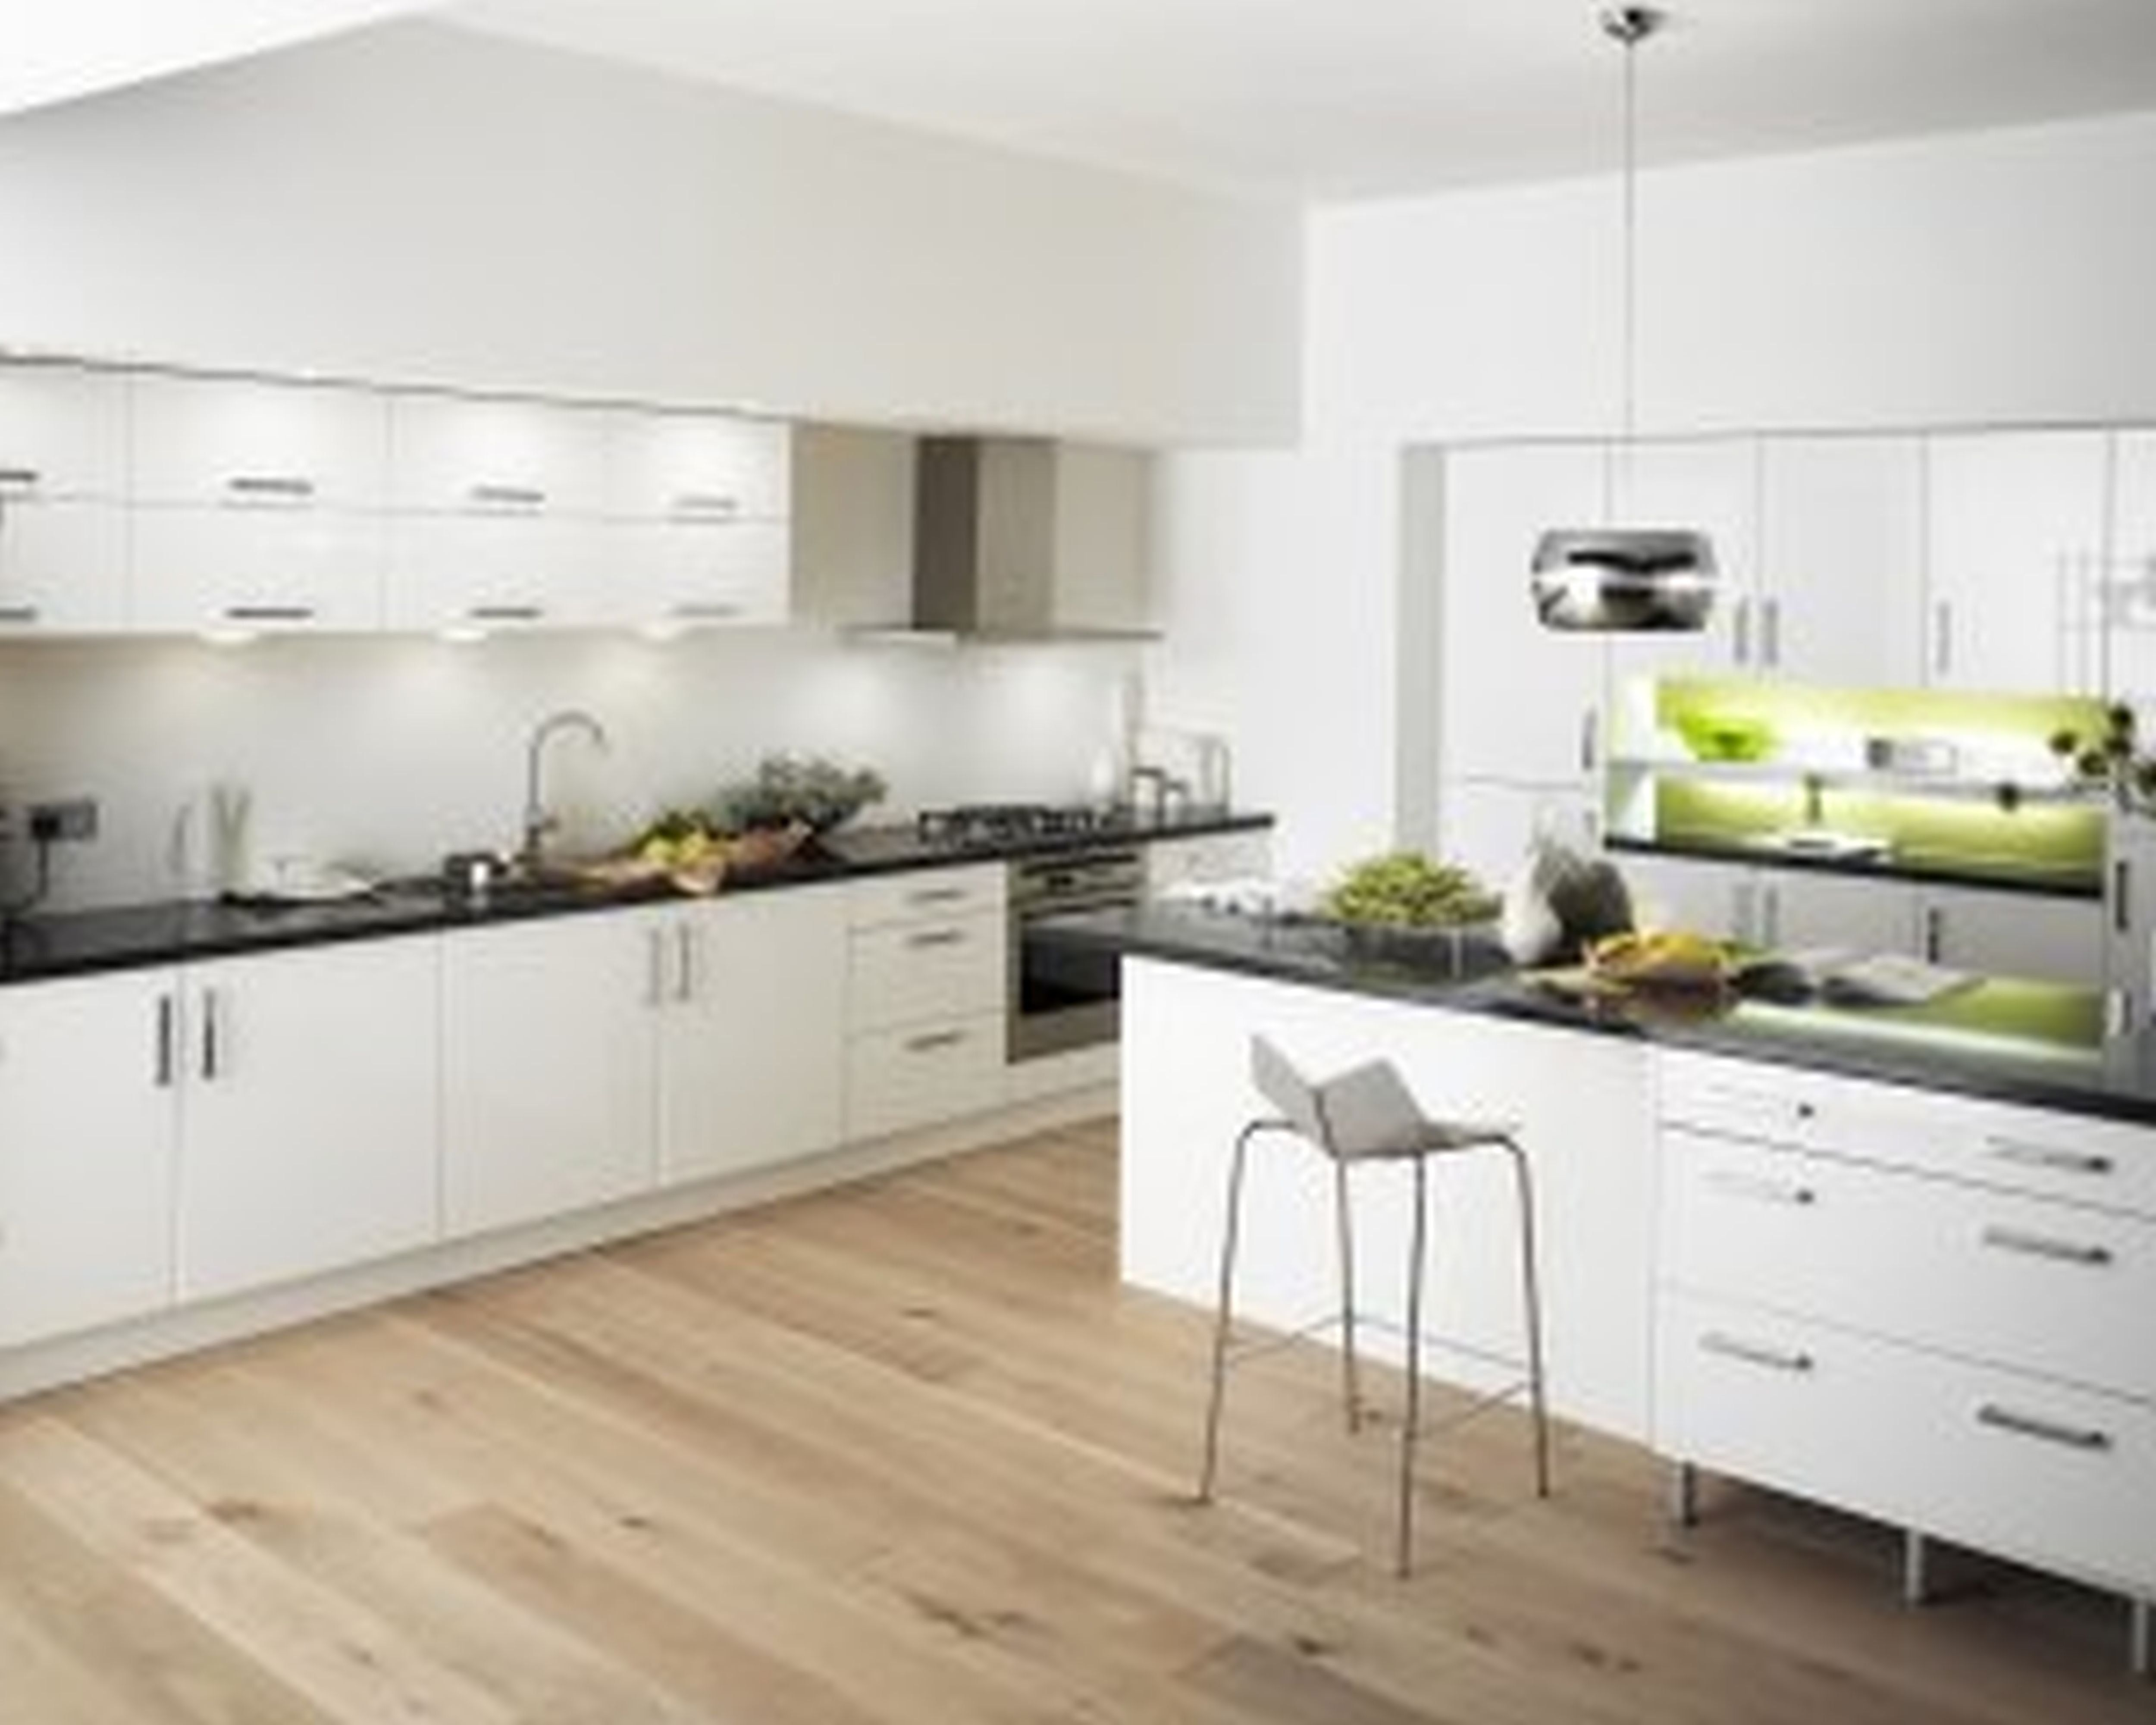 kitchen white ceramics ikea backsplash with white wooden kitchen cabinet havin white modern on kitchen remodel not white id=47599